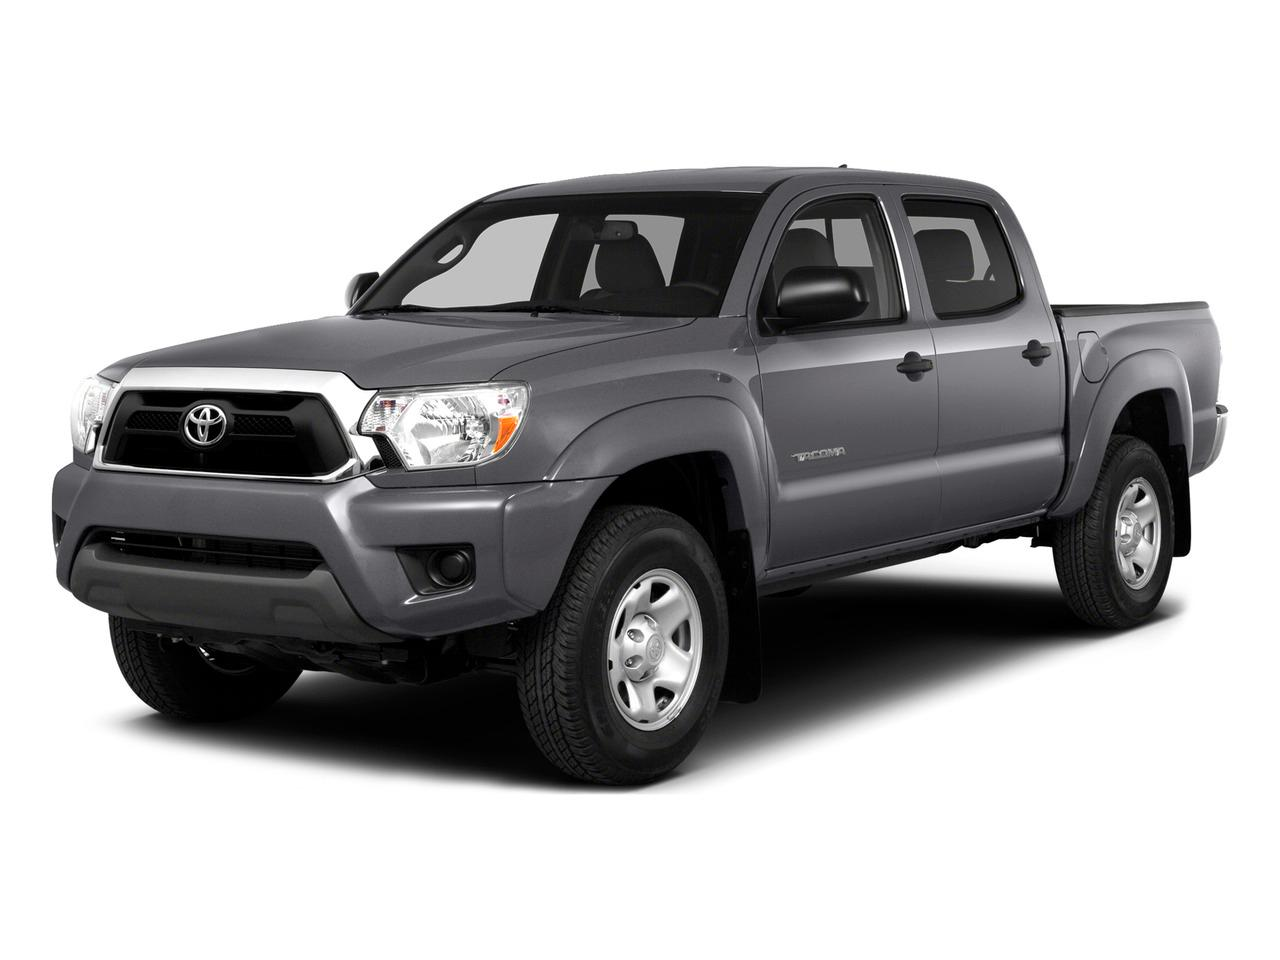 2015 Toyota Tacoma Vehicle Photo in Odessa, TX 79762